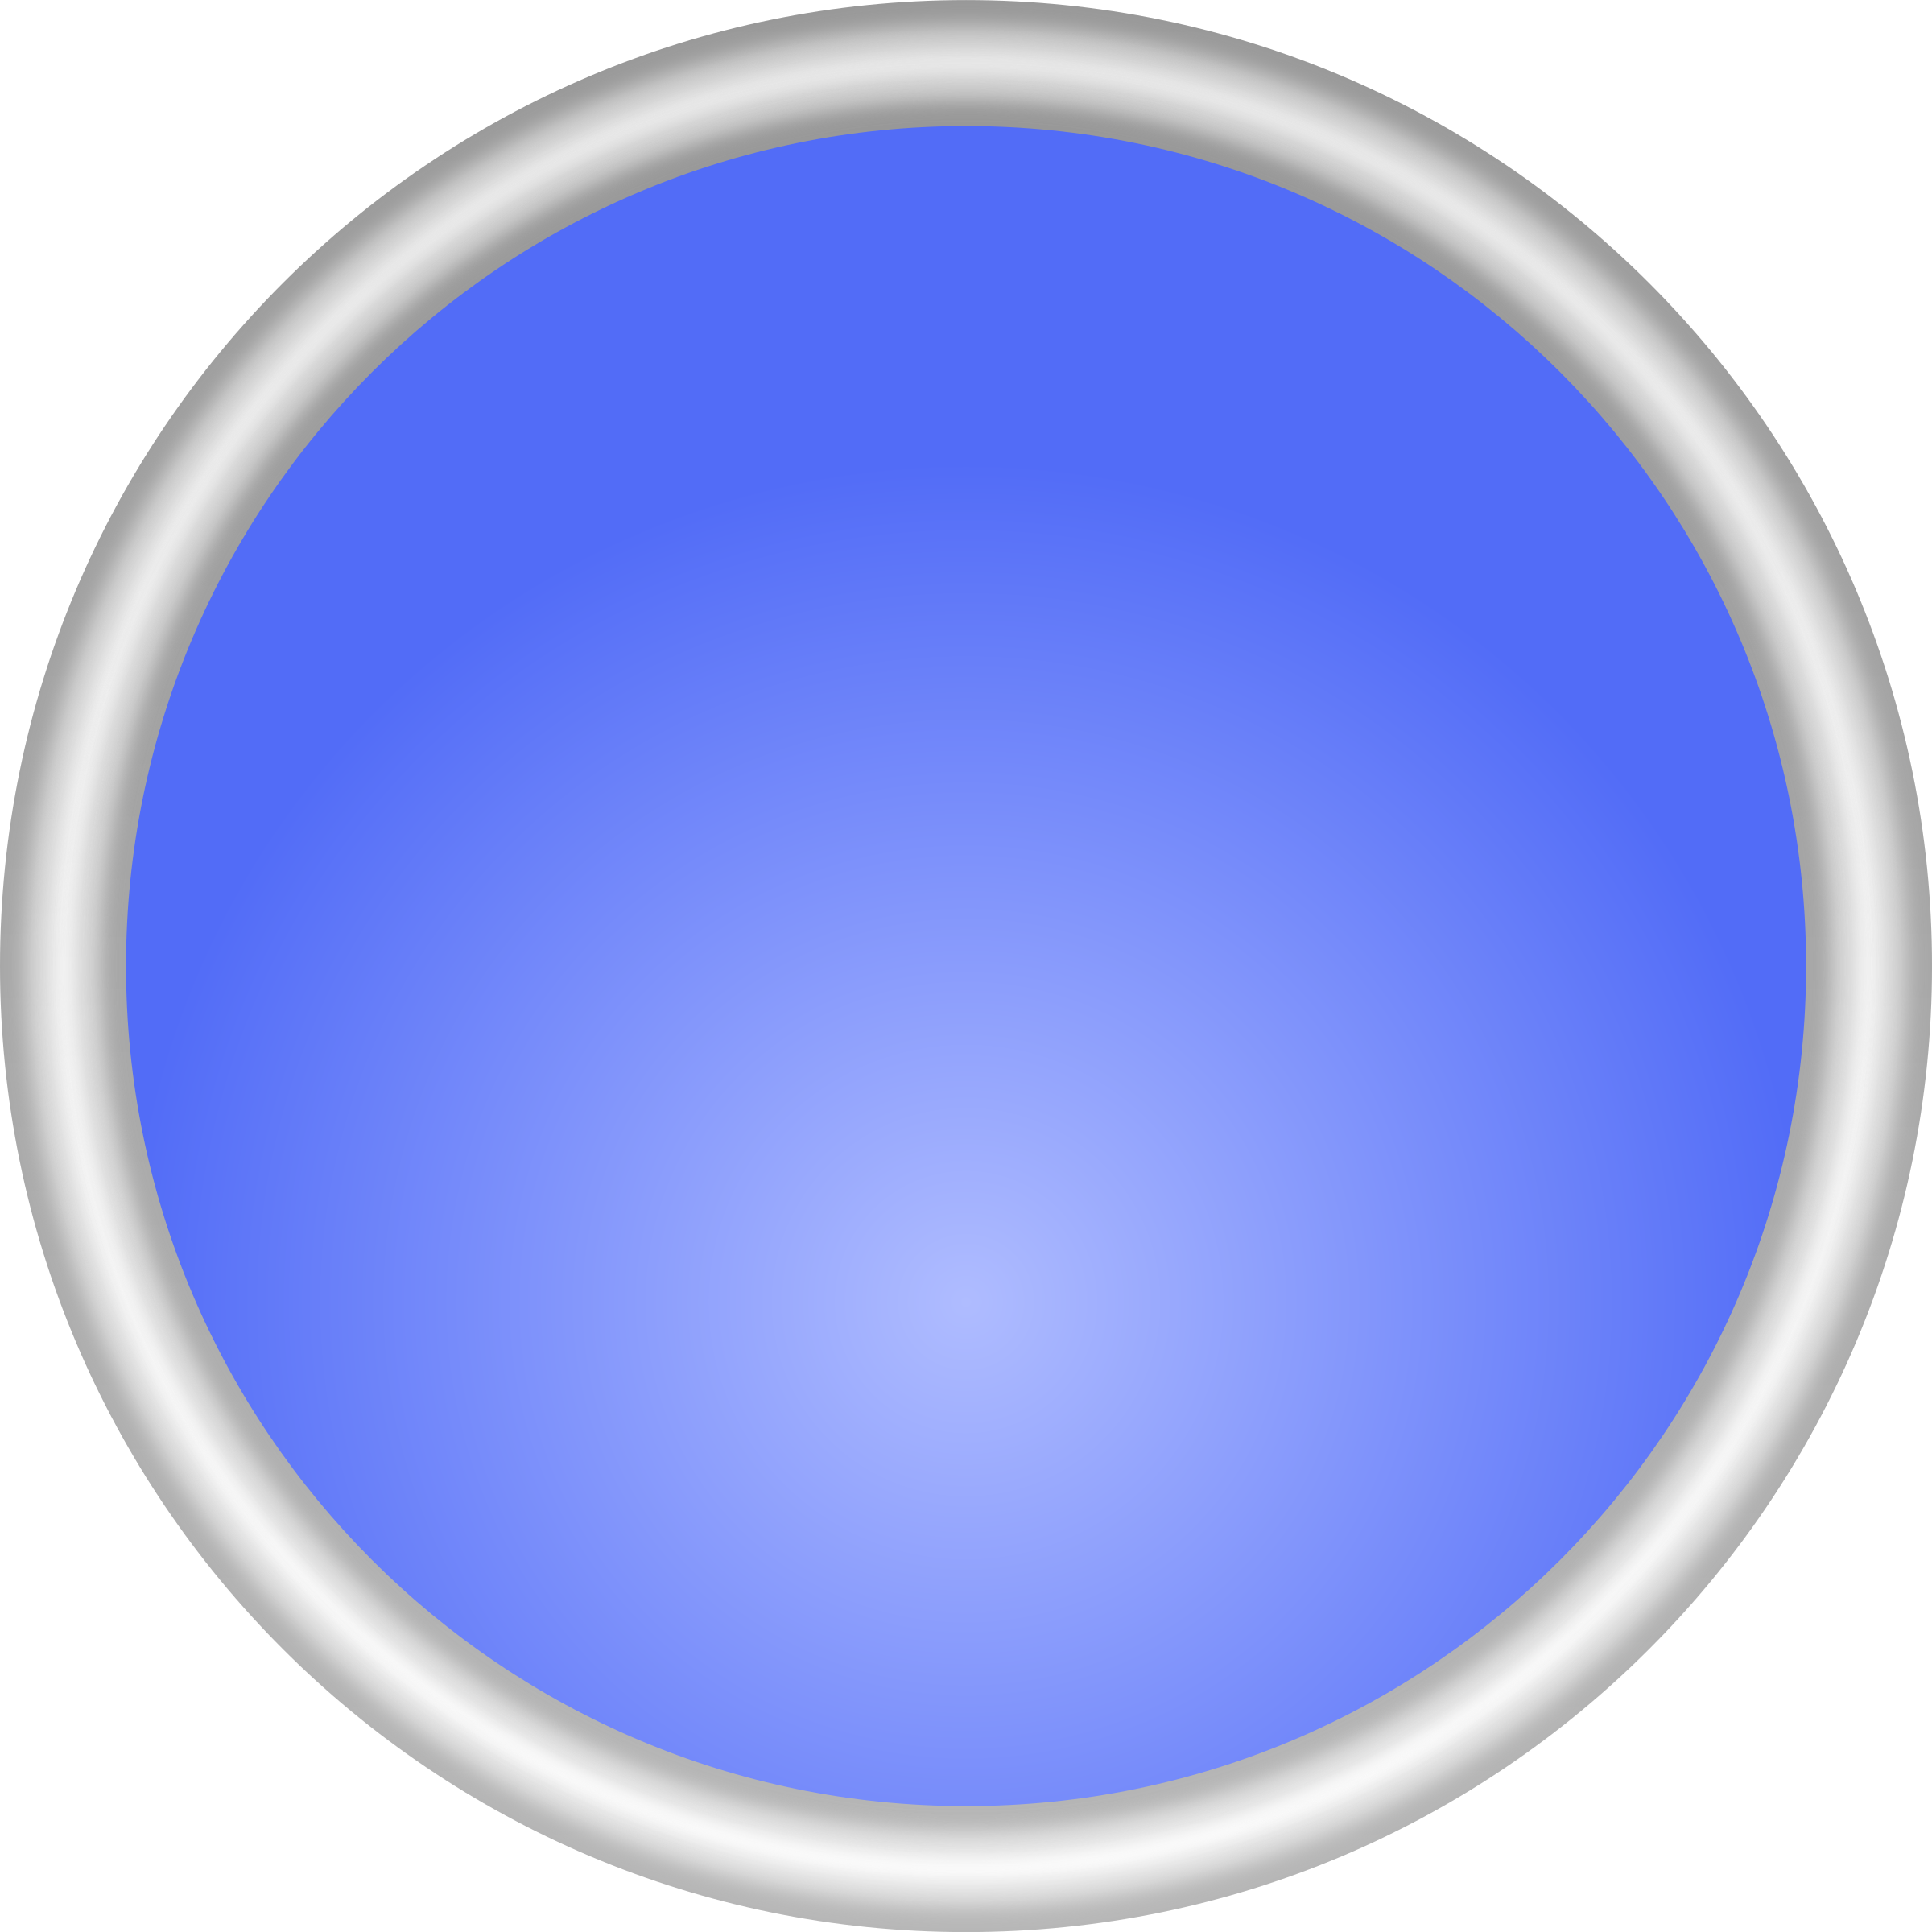 Shiny Blue Circle by adam_lowe